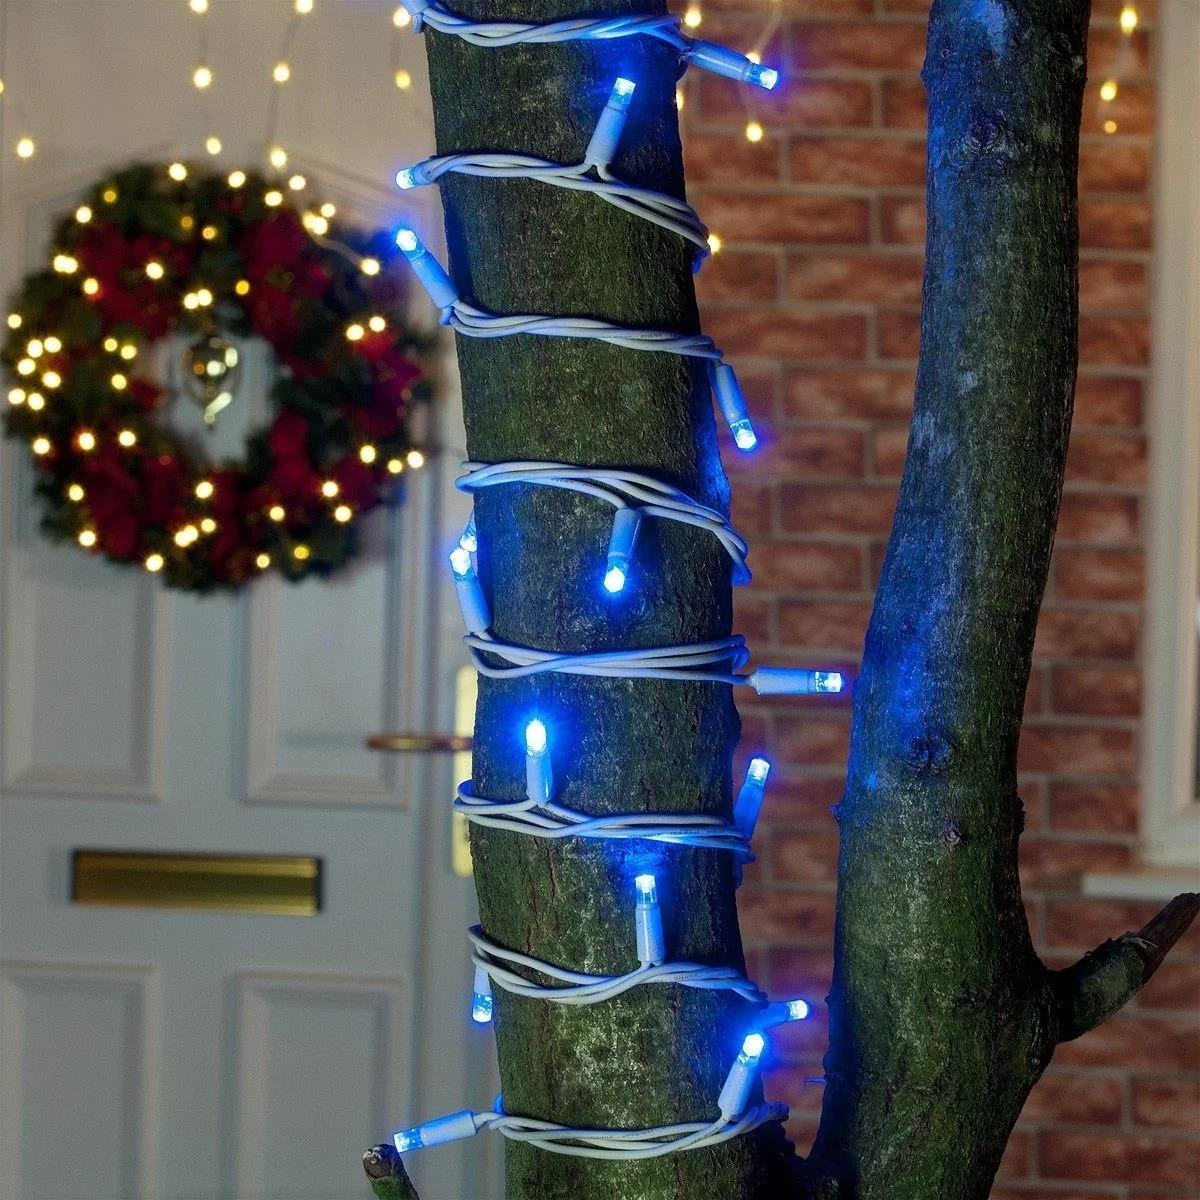 ConnectPro MV032 5m Blue Outdoor LED String Lights, Connectable, White Rubber Cable